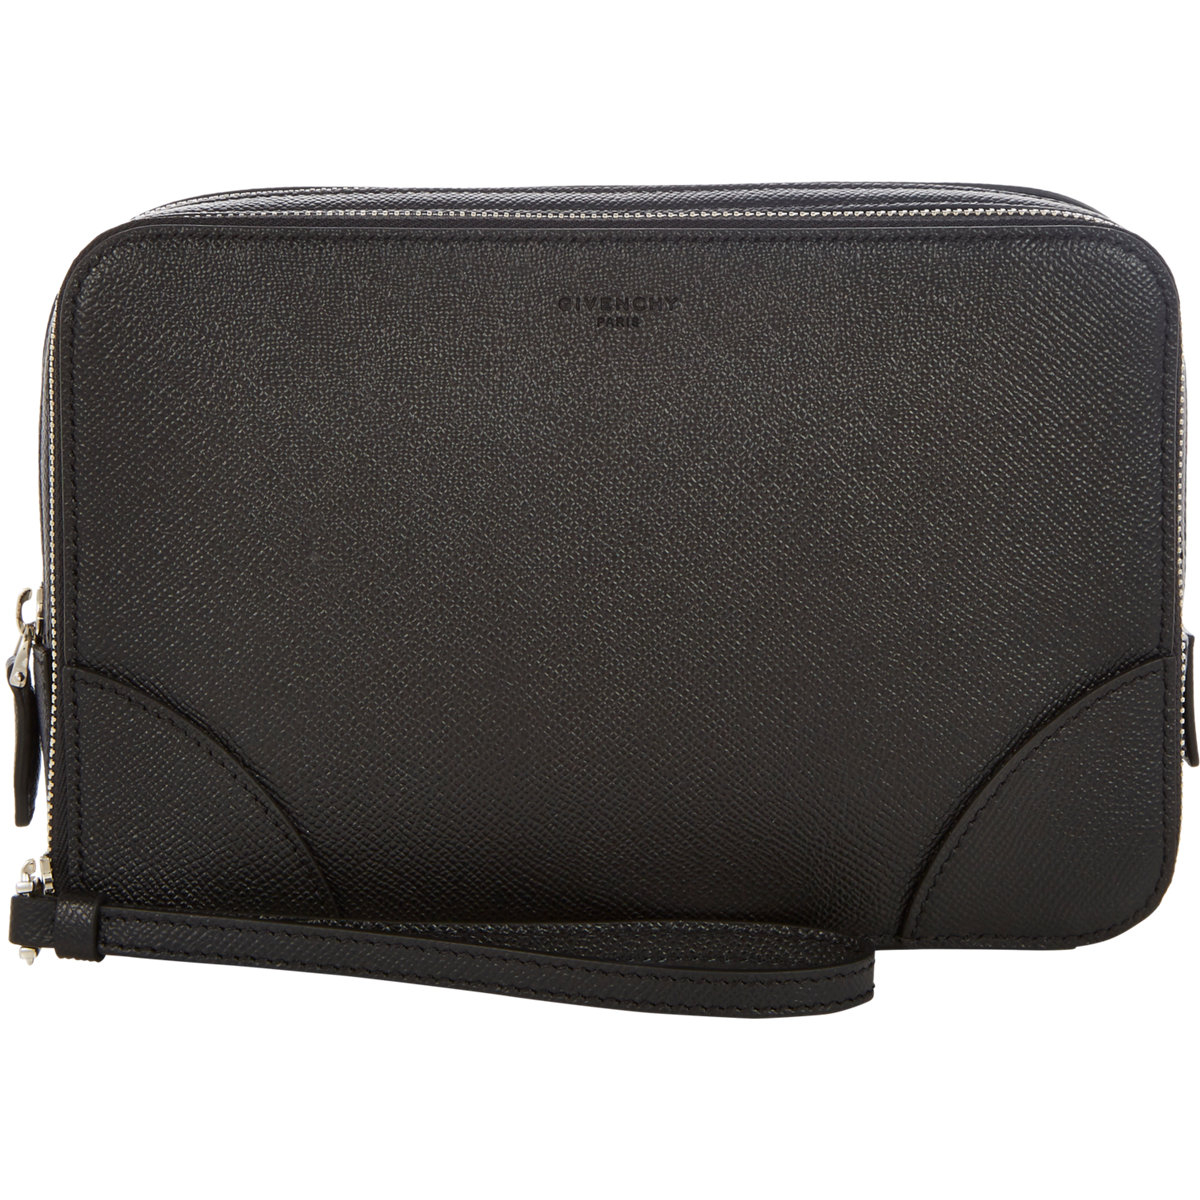 f0b518b2f2 Lyst - Givenchy Double-Zip Clutch in Black for Men